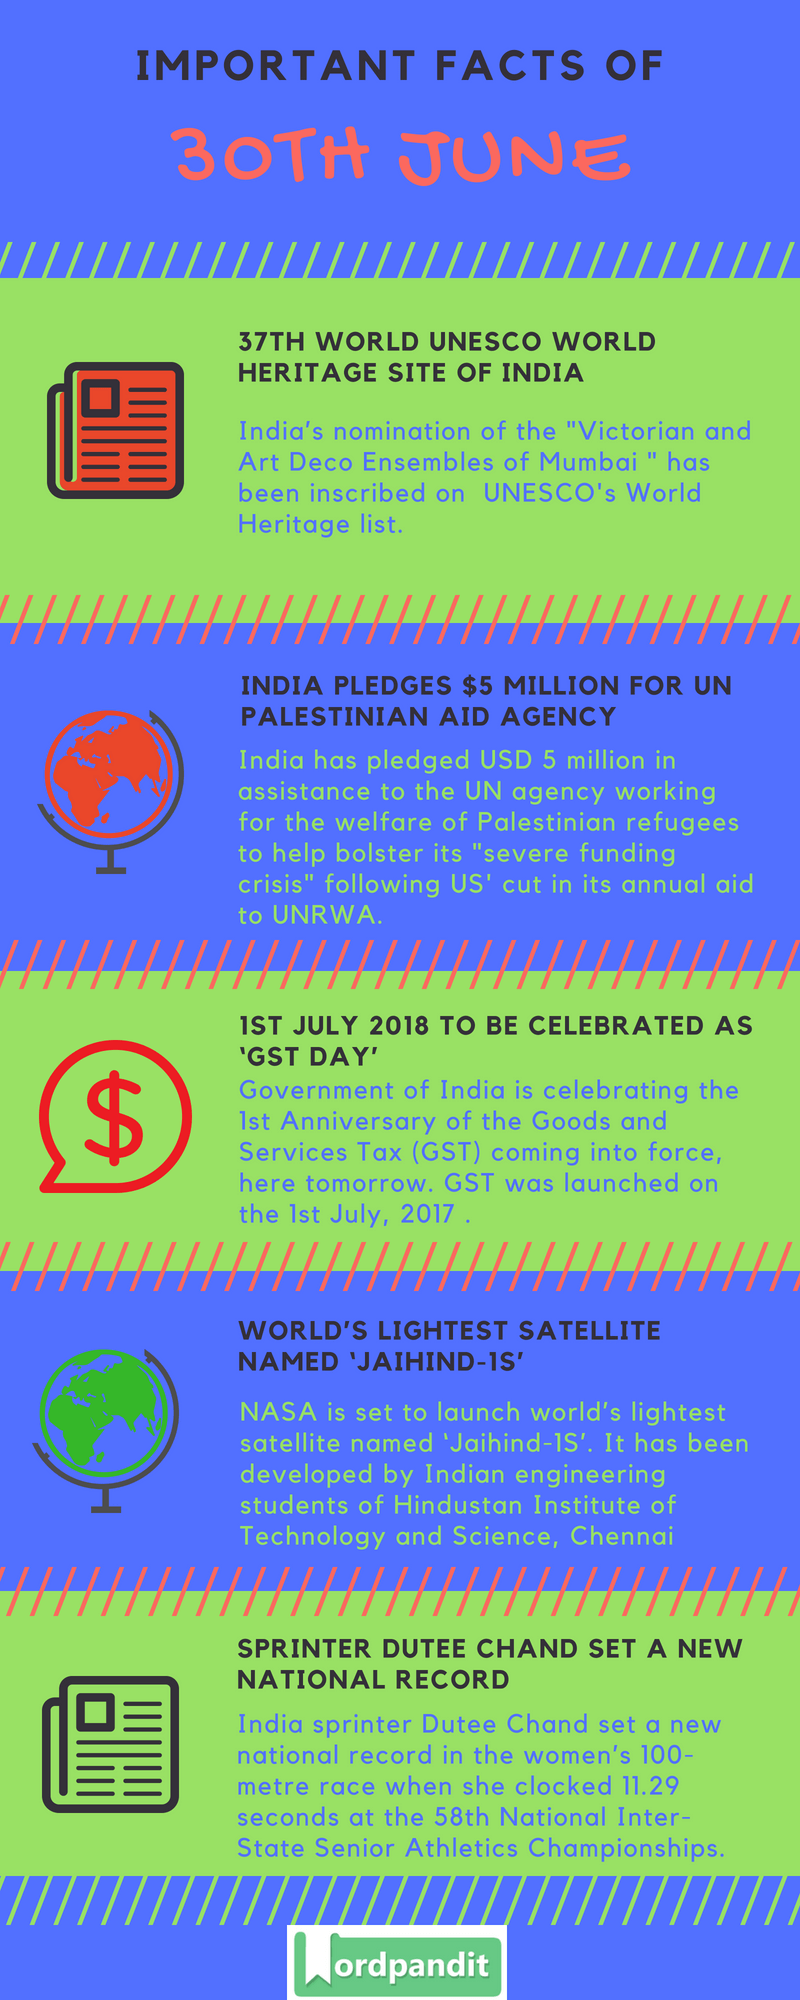 Daily Current Affairs 30 June 2018 Current Affairs Quiz June 30 2018 Current Affairs Infographic